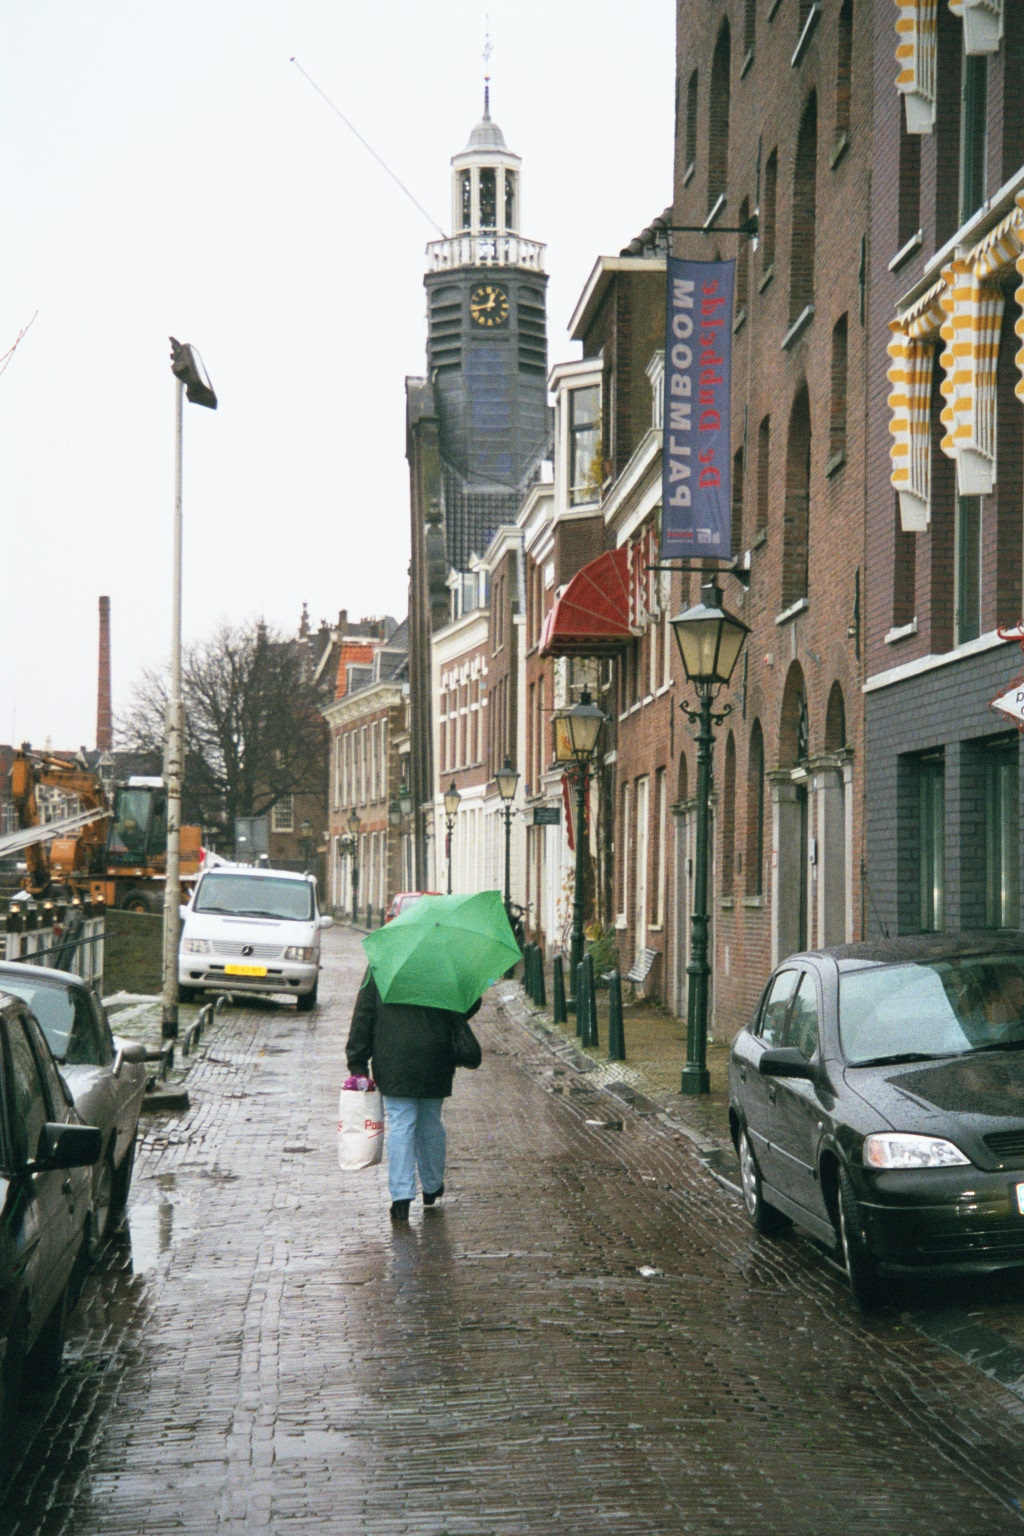 The Netherlands: From Delft to Delfshaven